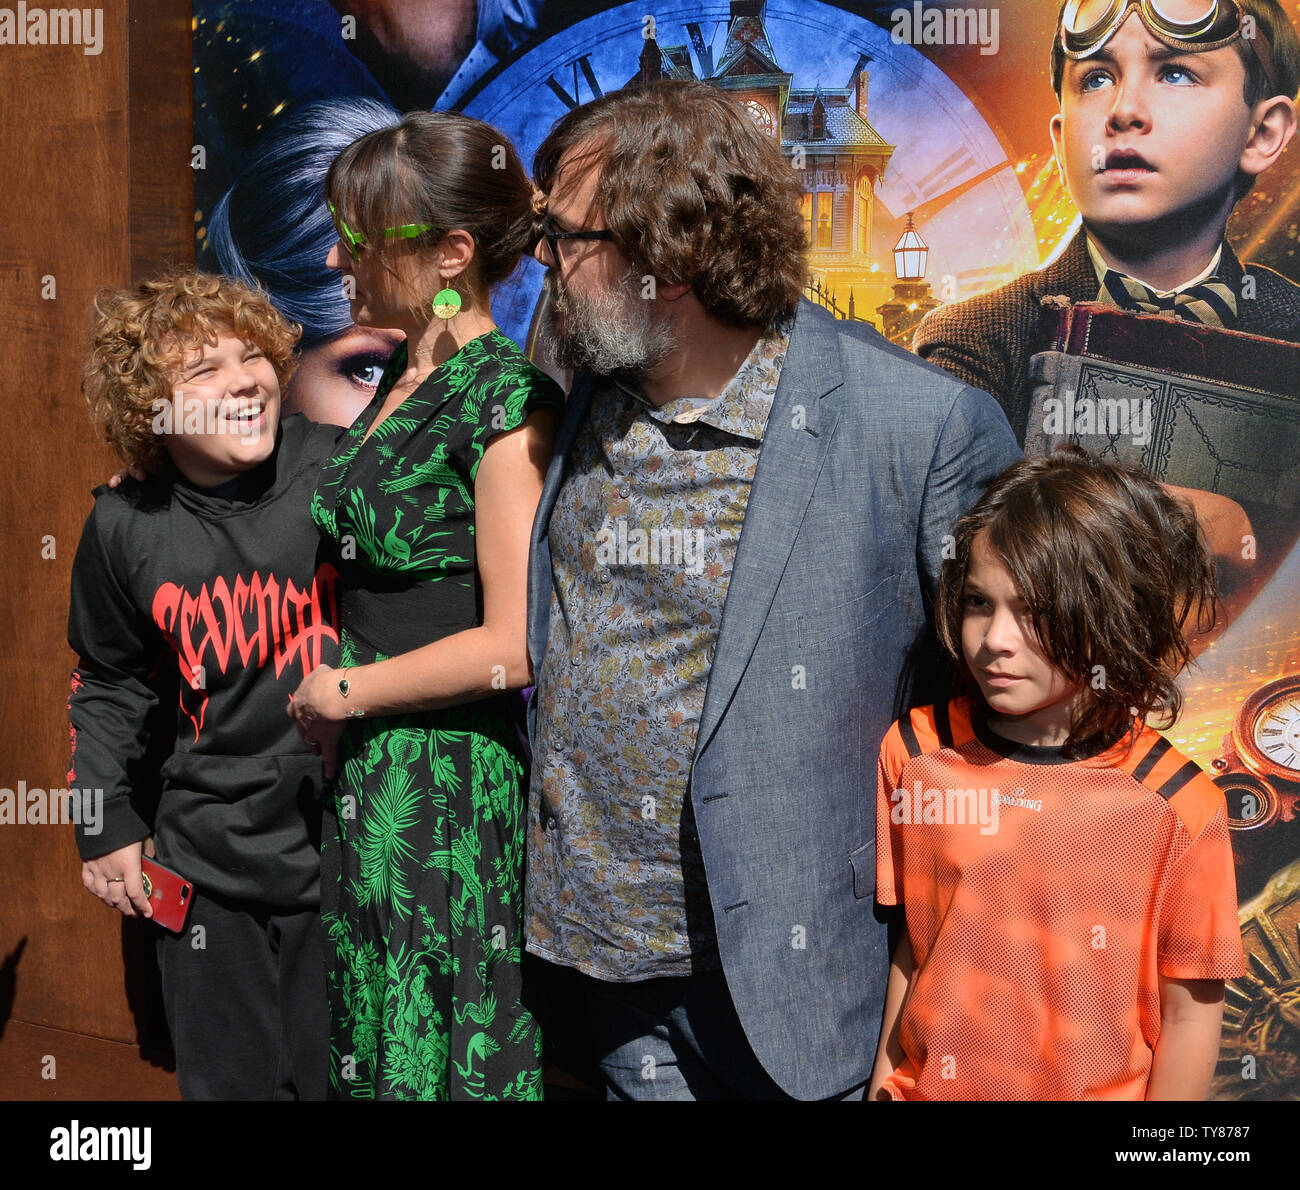 Thomas David Black And Samuel Jason Black High Resolution Stock Photography And Images Alamy Home tracks taska black forever stmpd. https www alamy com cast member jack black and his wife tanya haden and his sons samuel jason black l and thomas david black r attend the premiere of the sci fi motion picture comedy and thriller the house with a clock in its walls at the tcl chinese theatre in the hollywood section of los angeles on september 16 2018 the film tells the story of a young orphan named lewis barnavelt jack black who aids his magical uncle in locating a clock with the power to bring about the end of the world photo by jim ruymenupi image257722199 html